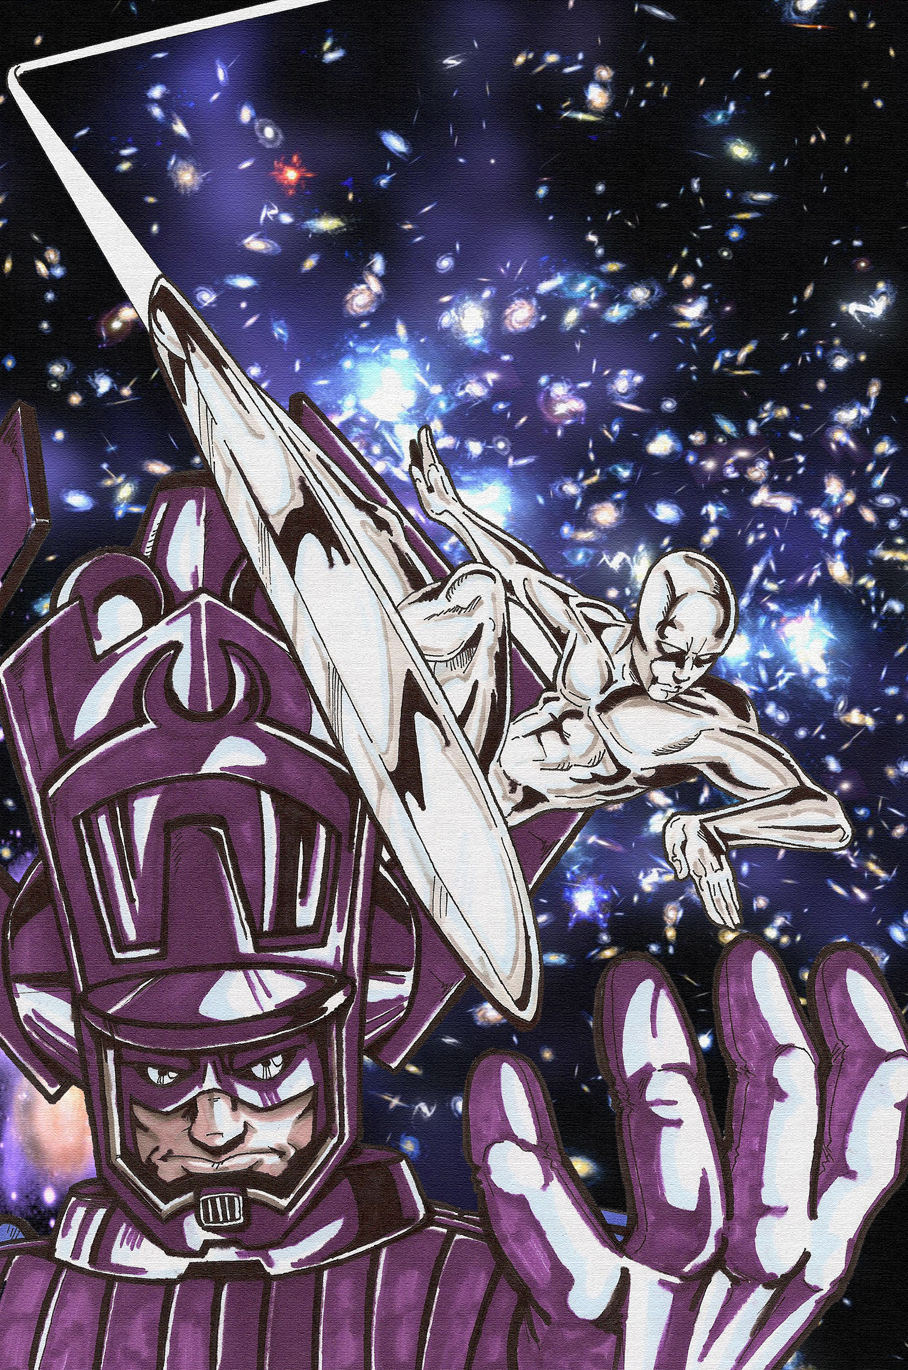 Silver Surfer And Galactus by secowankenobi